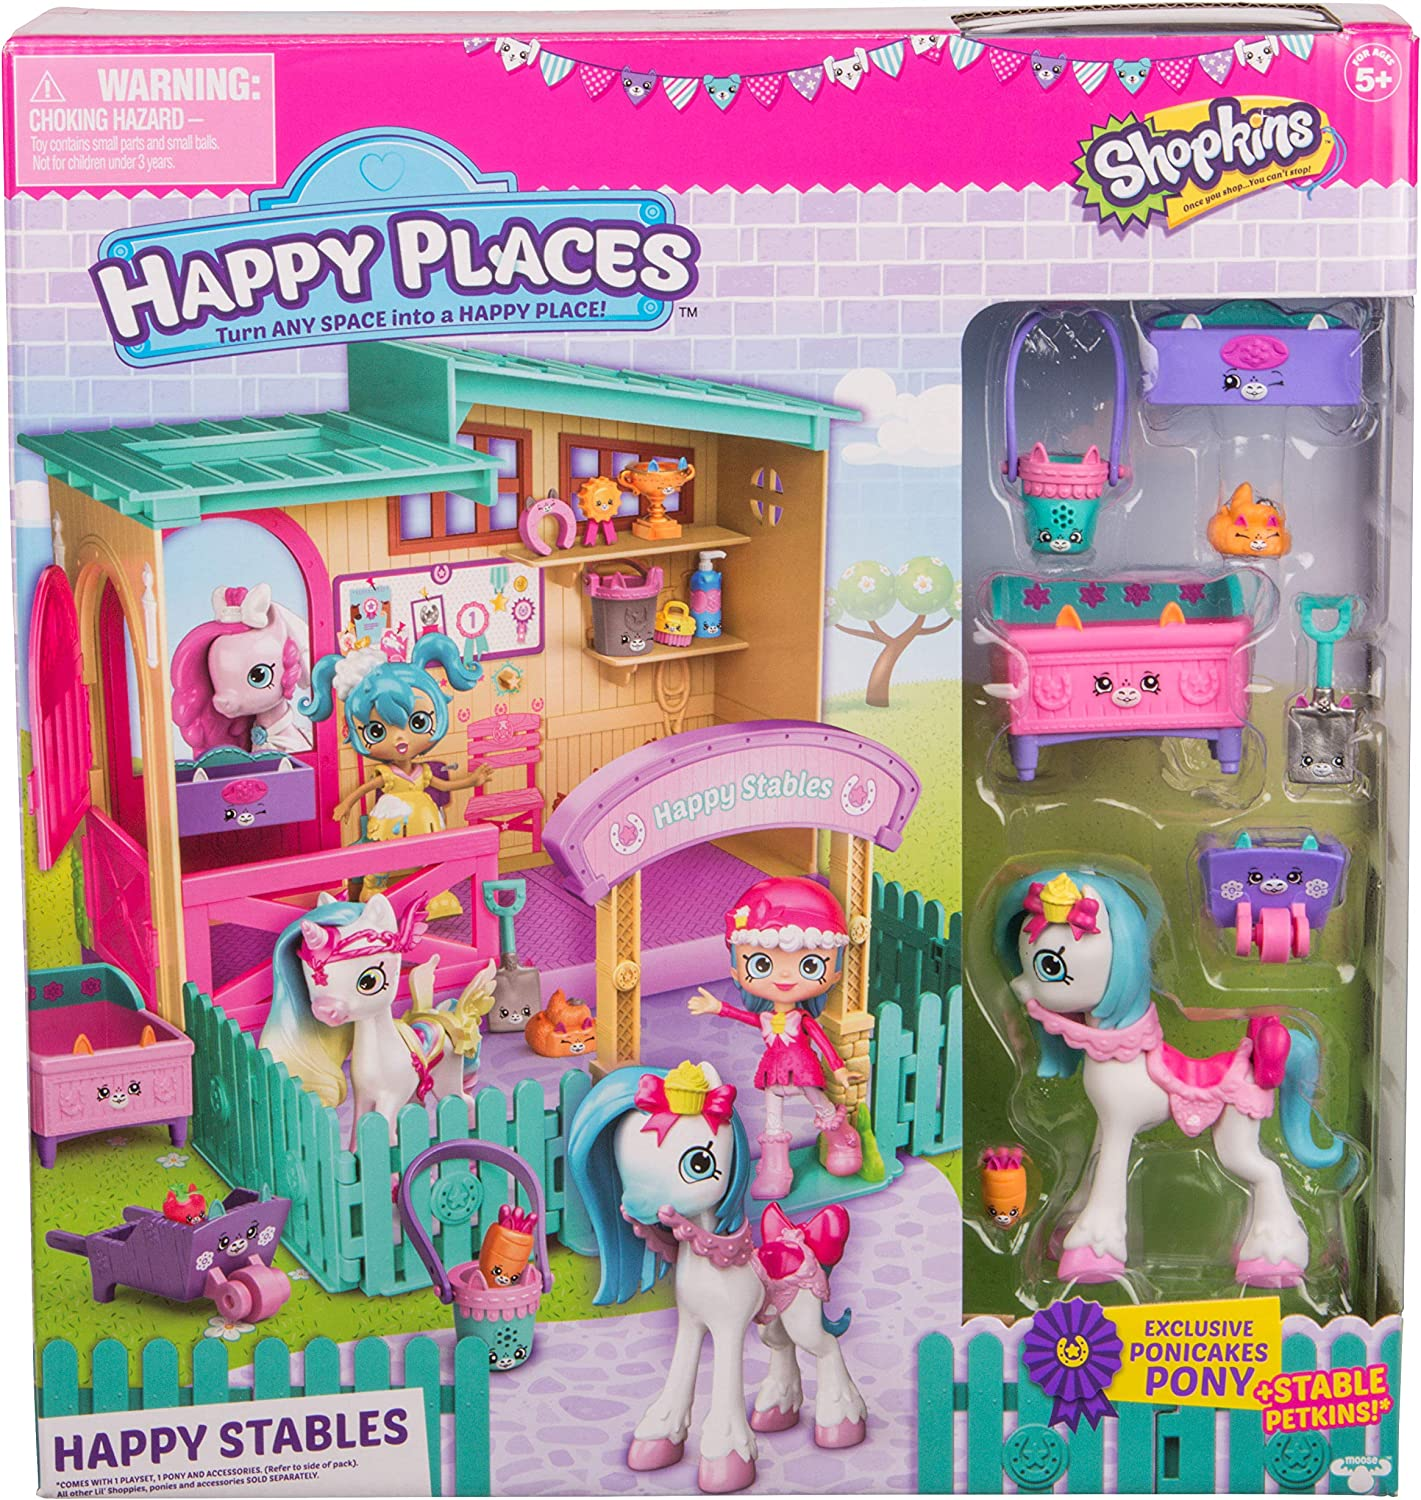 Top 12 Best Shopkins Toys (2020 Reviews & Buying Guide) 1